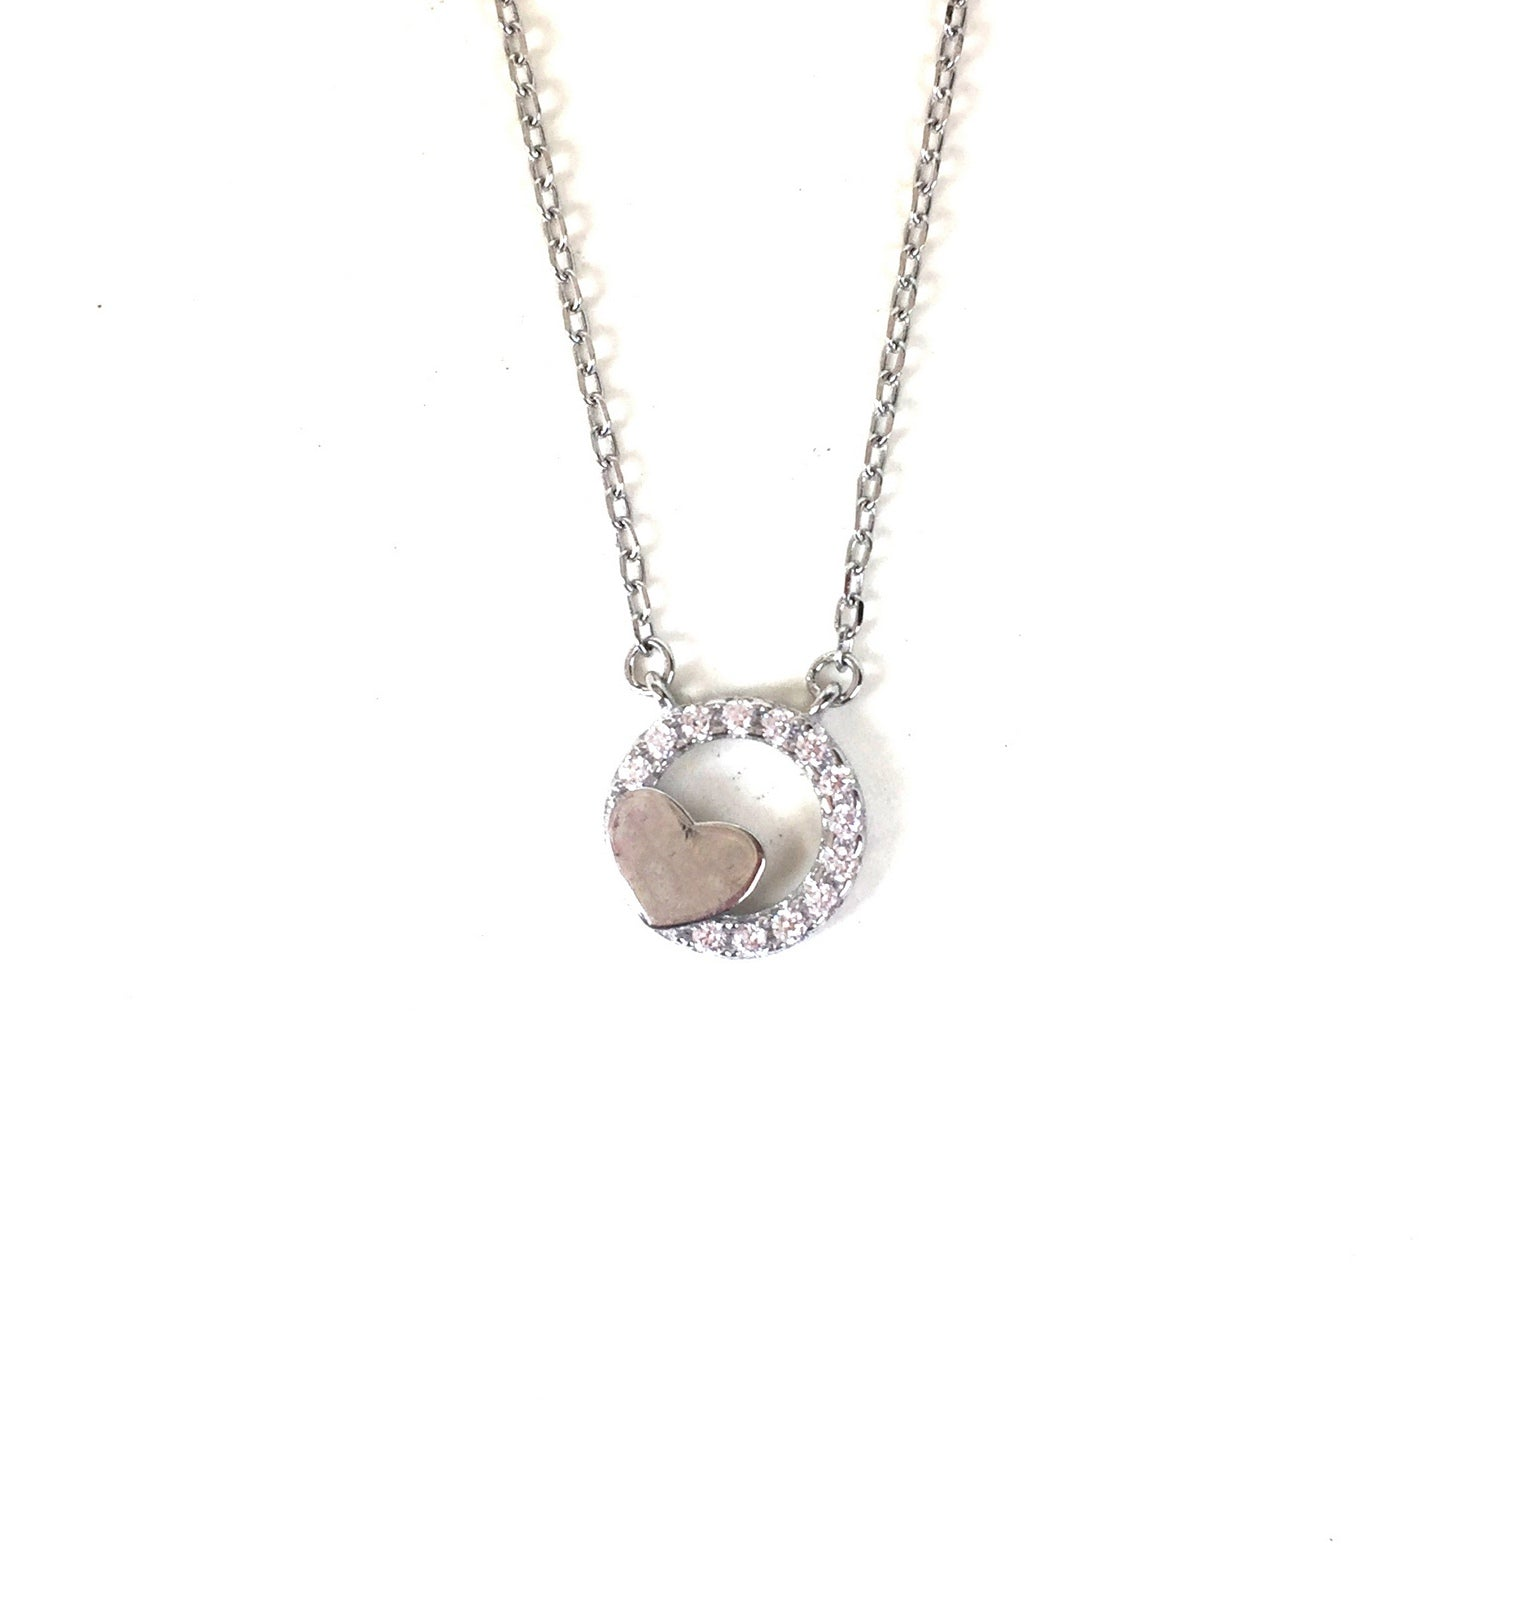 HEART AND CIRCLE PAVE CZ STERLING SILVER NECKLACE